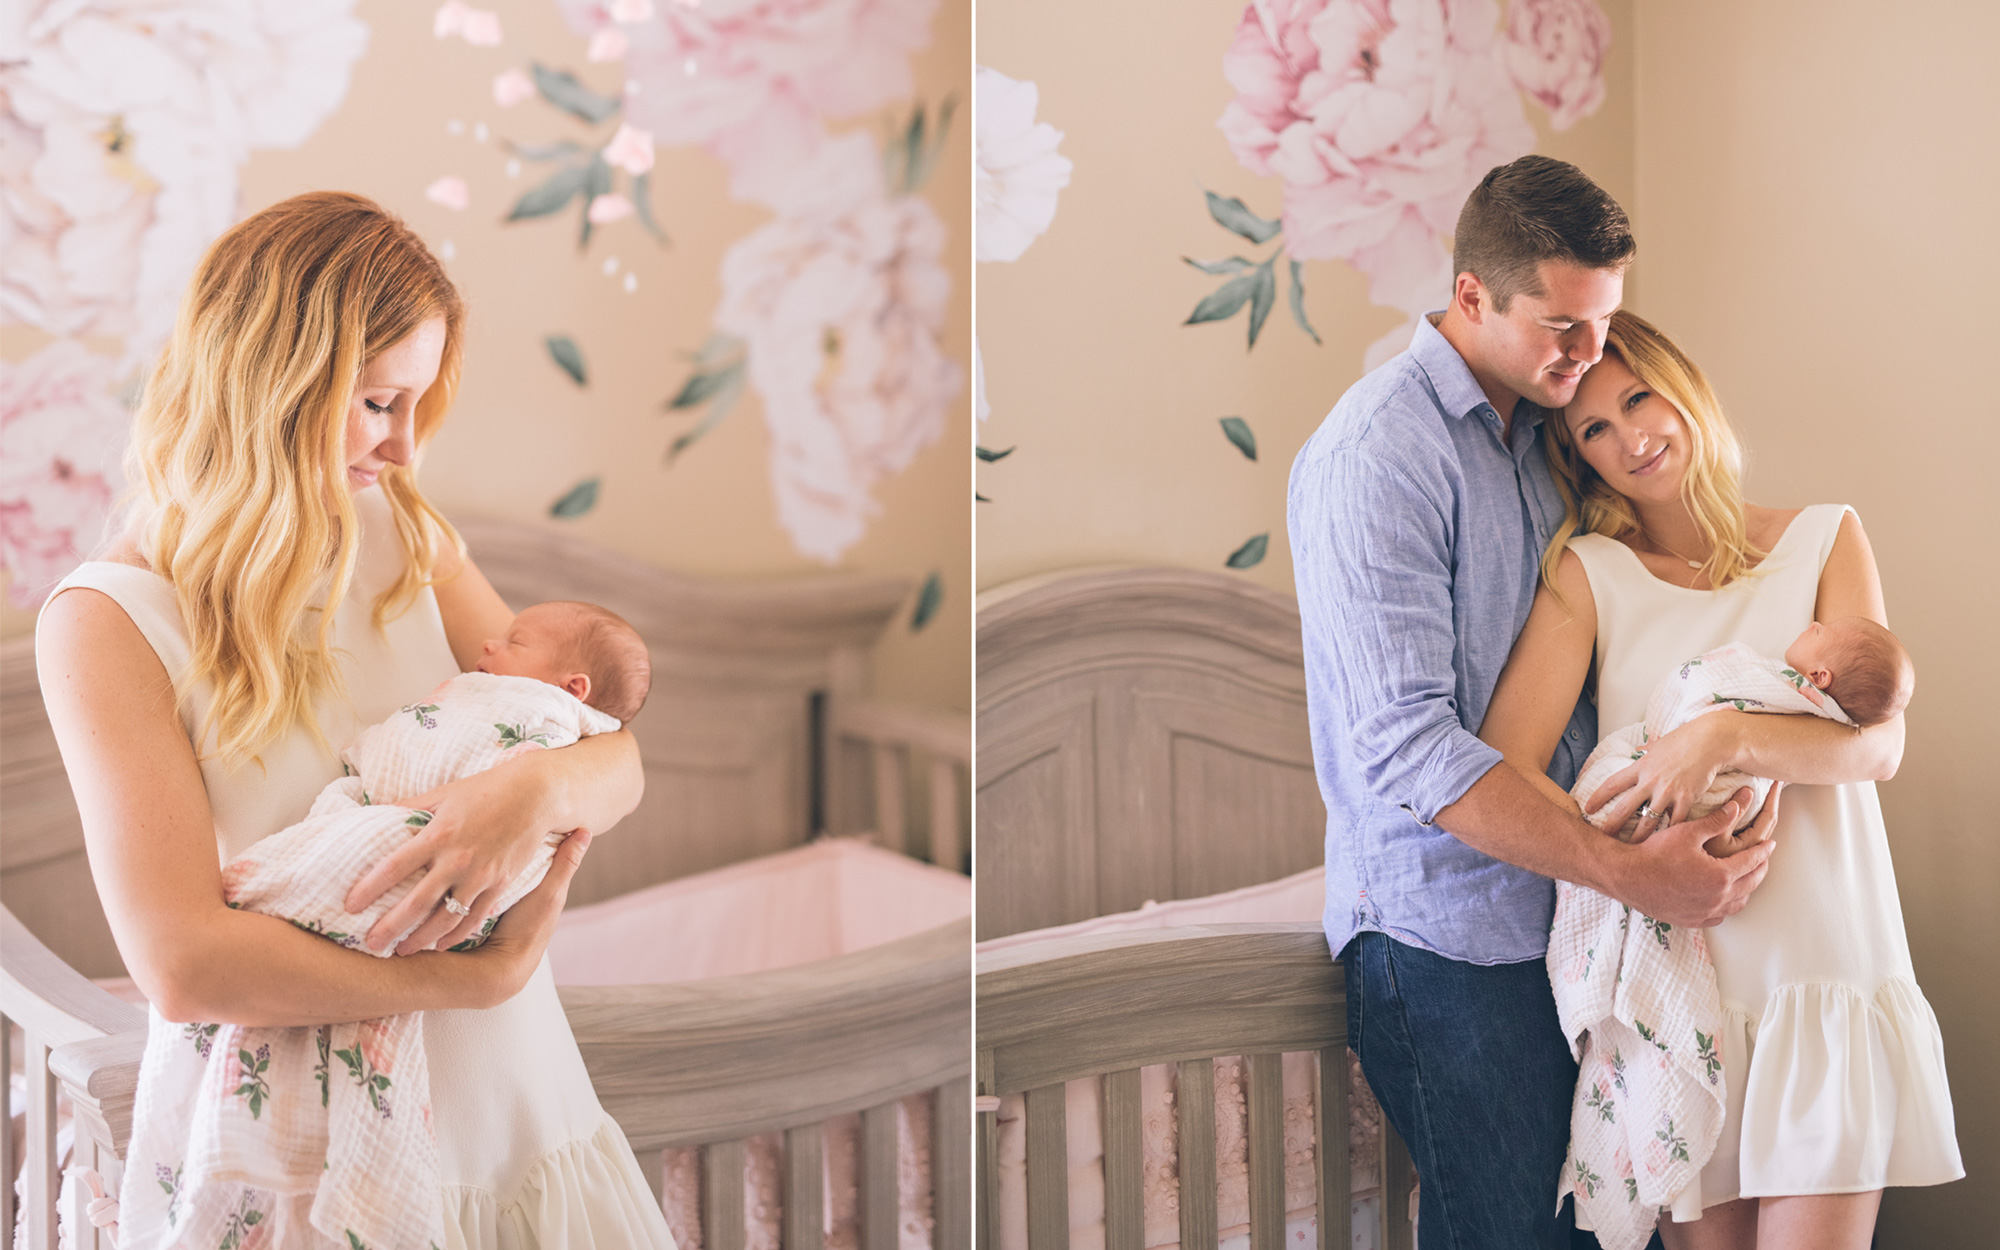 what-to-wear-newborn-session-photo-example.jpg